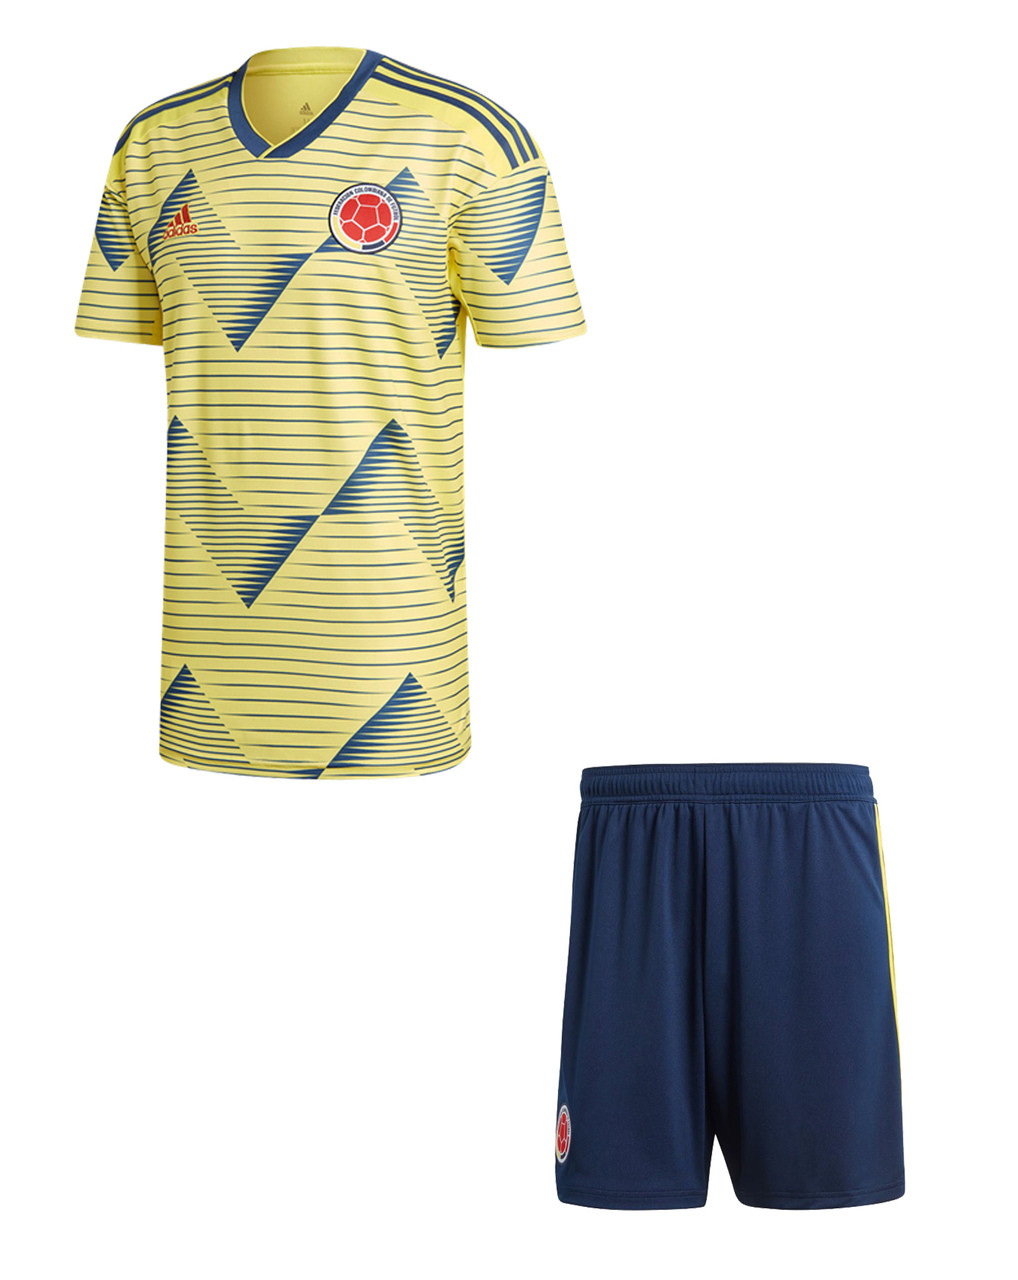 1999cddcb Colombia International Home Kids Kit with free name and number. Price   £23.99. Image 1